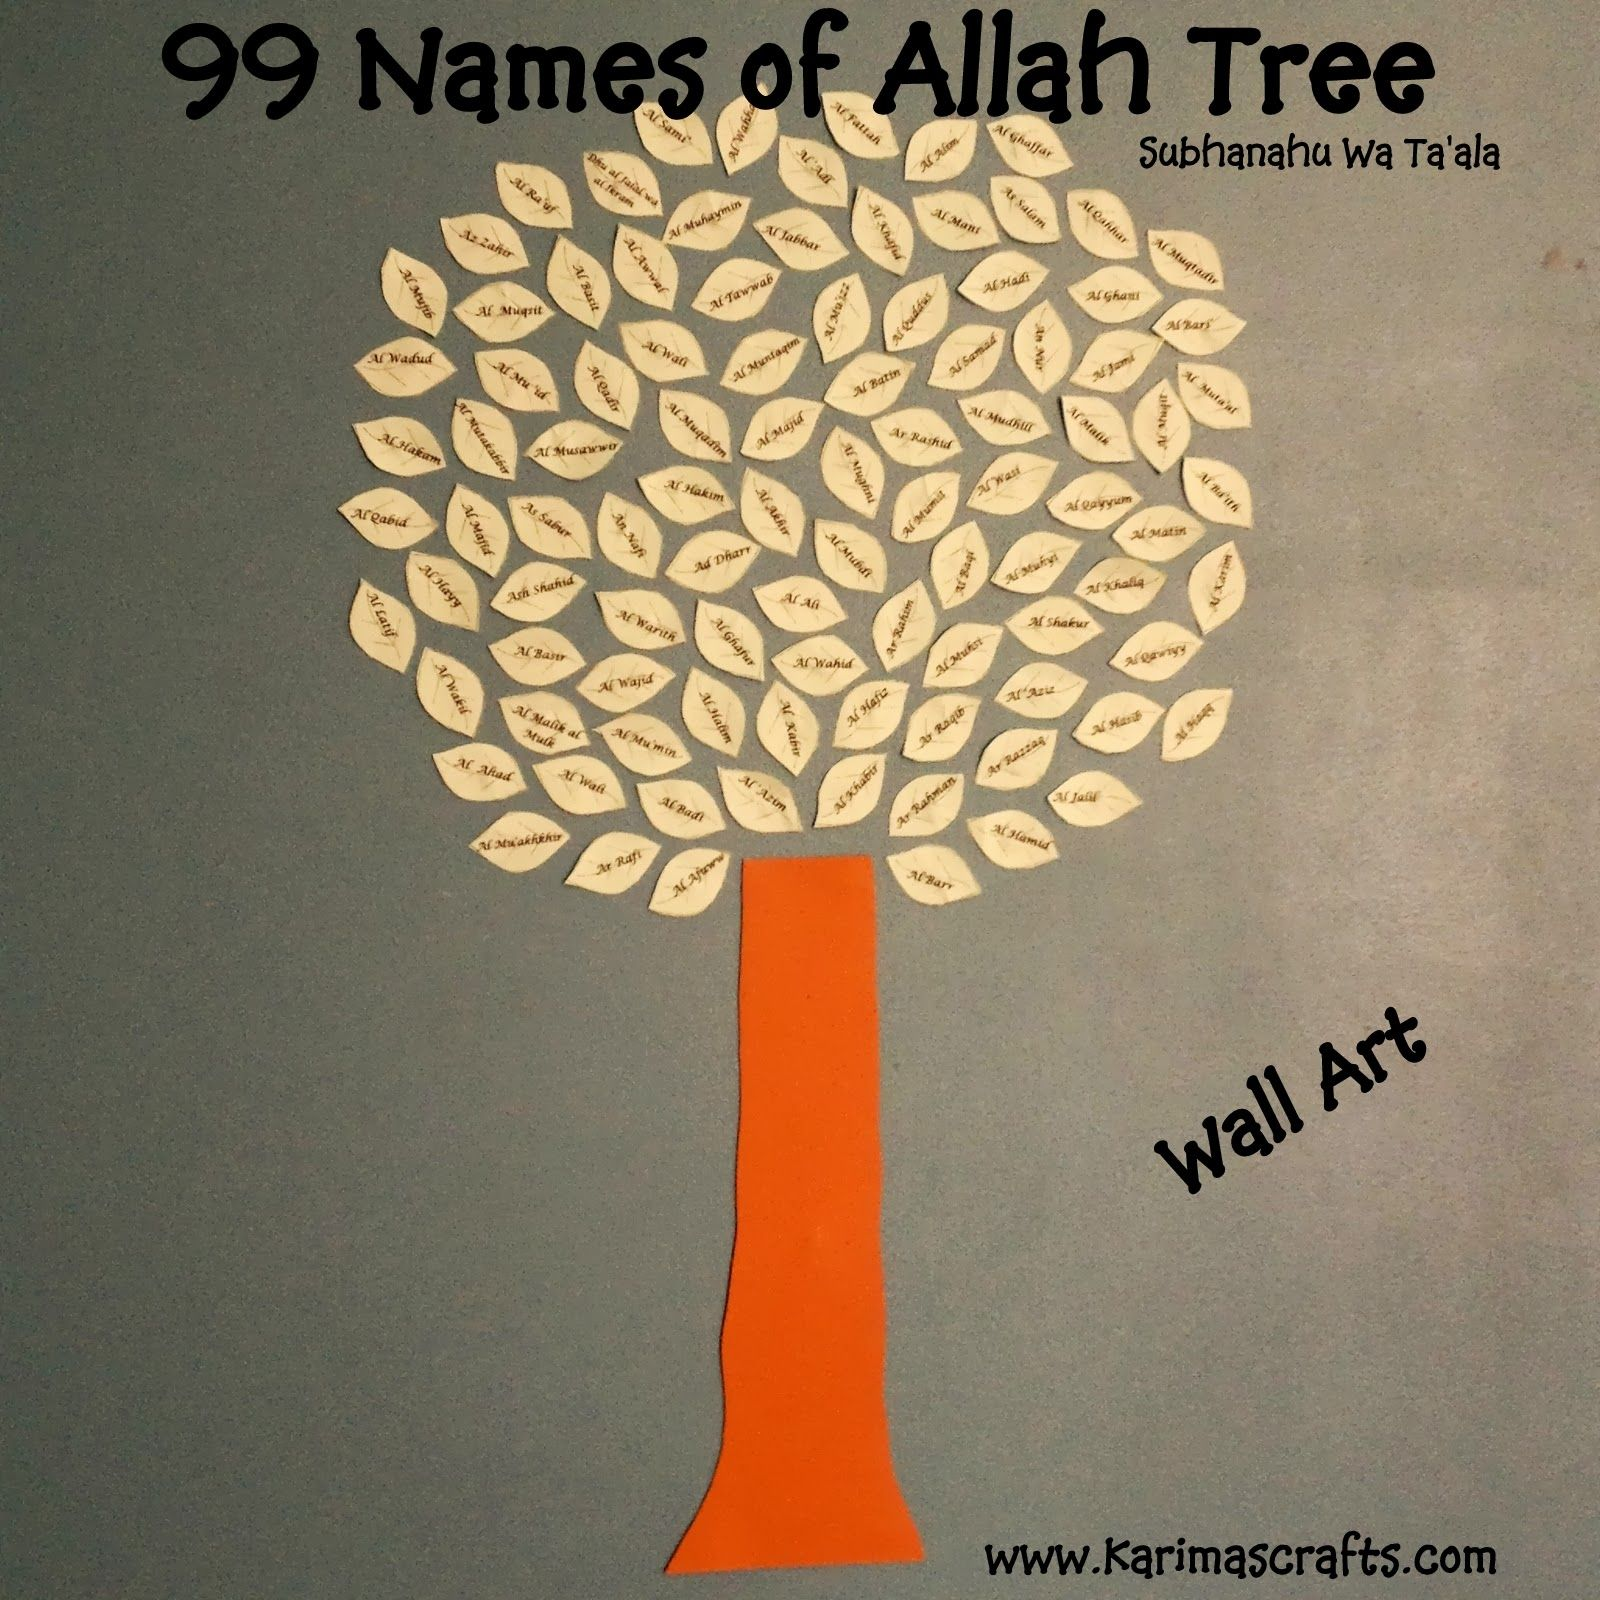 Karima S Crafts 99 Names Of Allah Tree